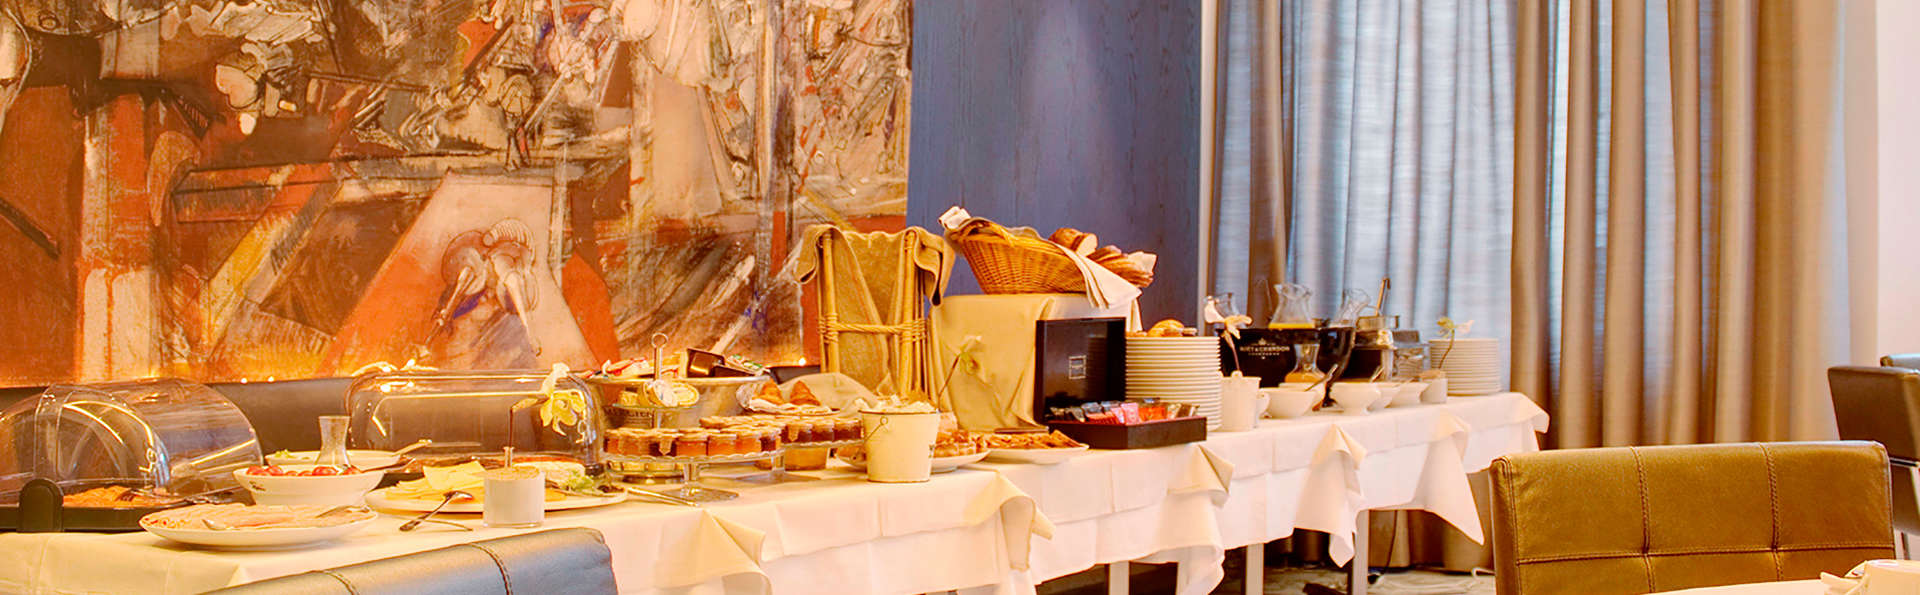 Spa-Hôtel de Bourgtheroulde - EDIT_buffet1.jpg